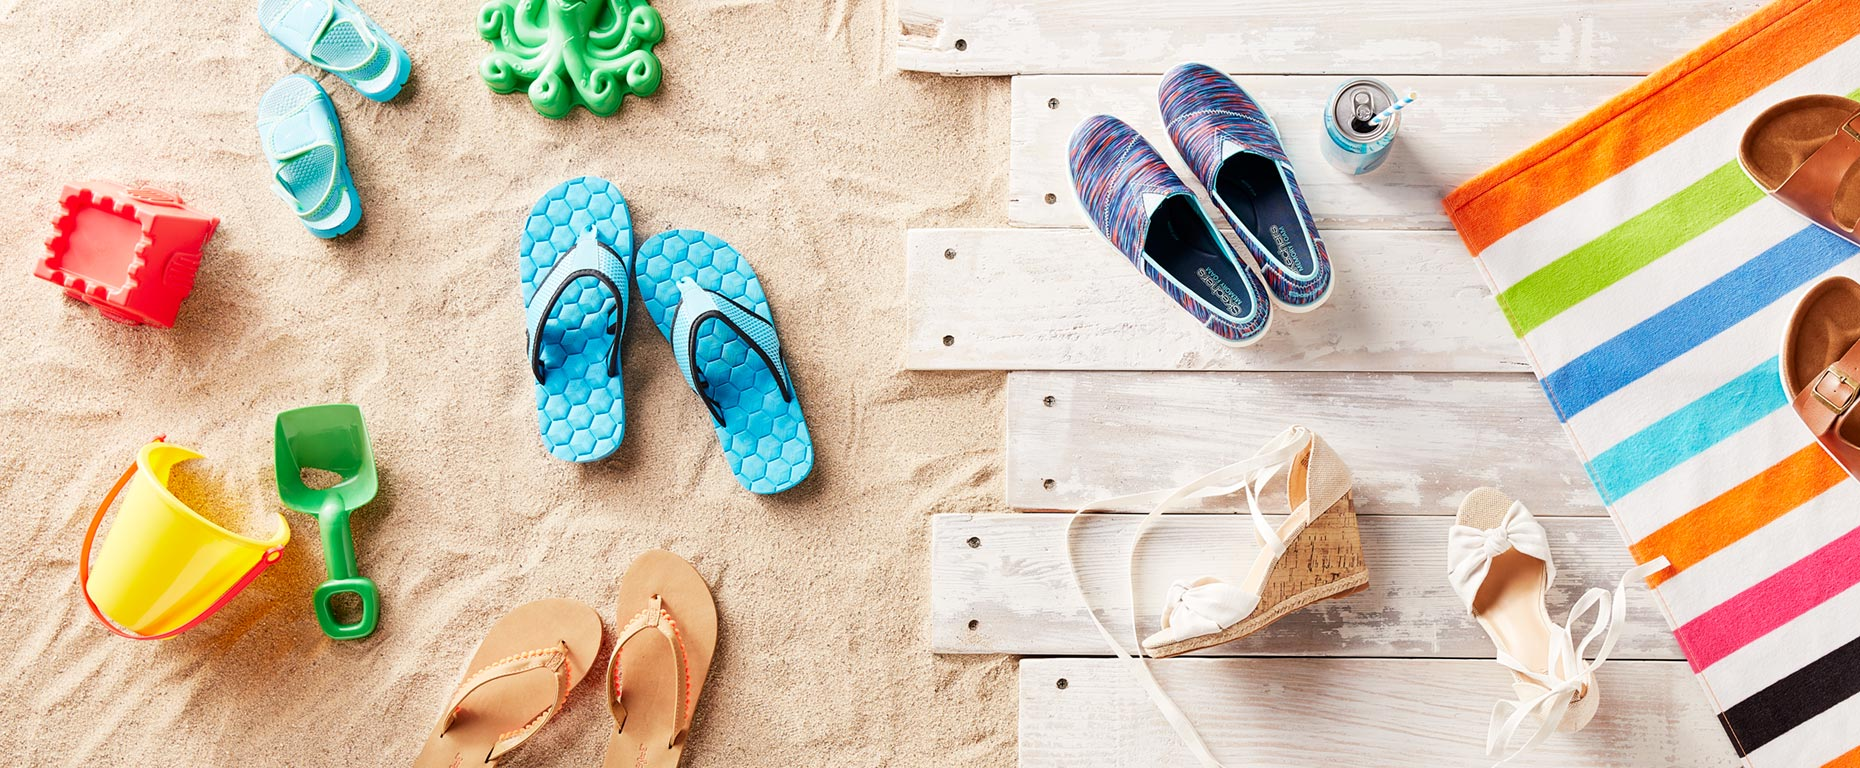 Week24_EDLP_hh900x300_SummerShoes_crp2